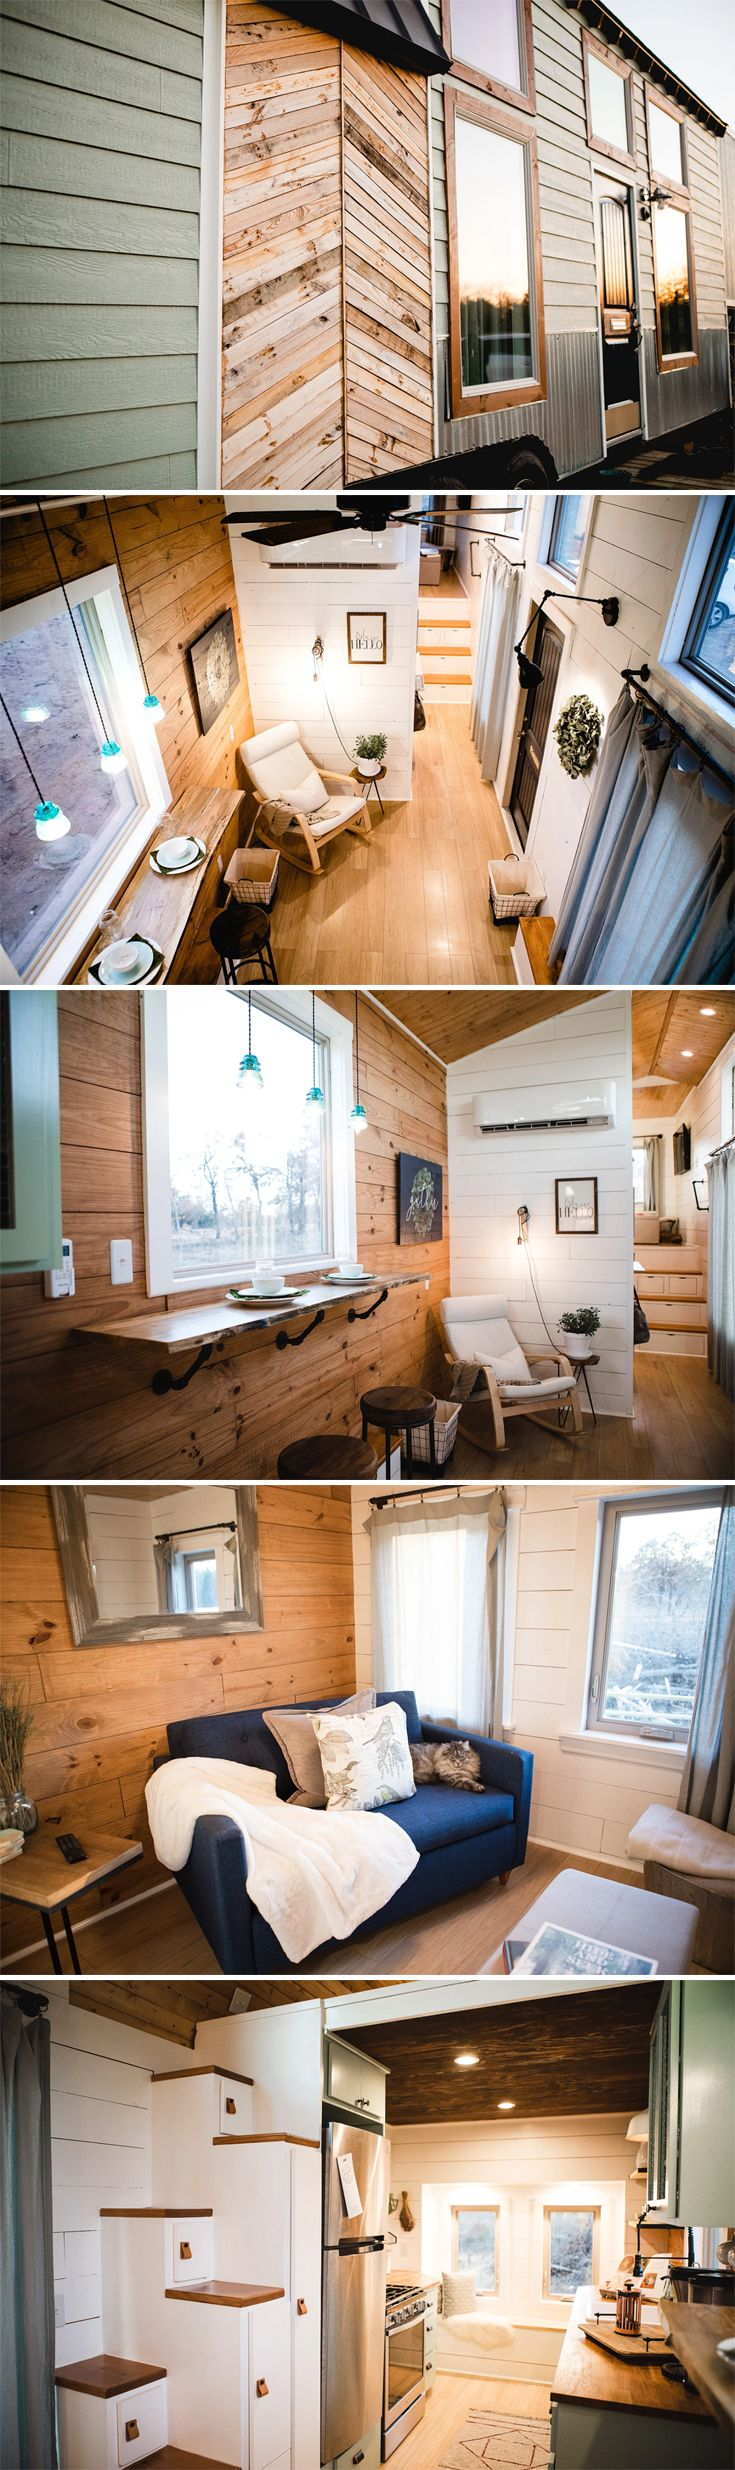 "This beautiful 32' gooseneck tiny house is named ""Molly"" and was built by Britni & Justin Portrey at Tiny is Now. Twelve-foot ceilings and a mixture of natural wood and satin white surfaces combine to create a spacious, comfortable living space."